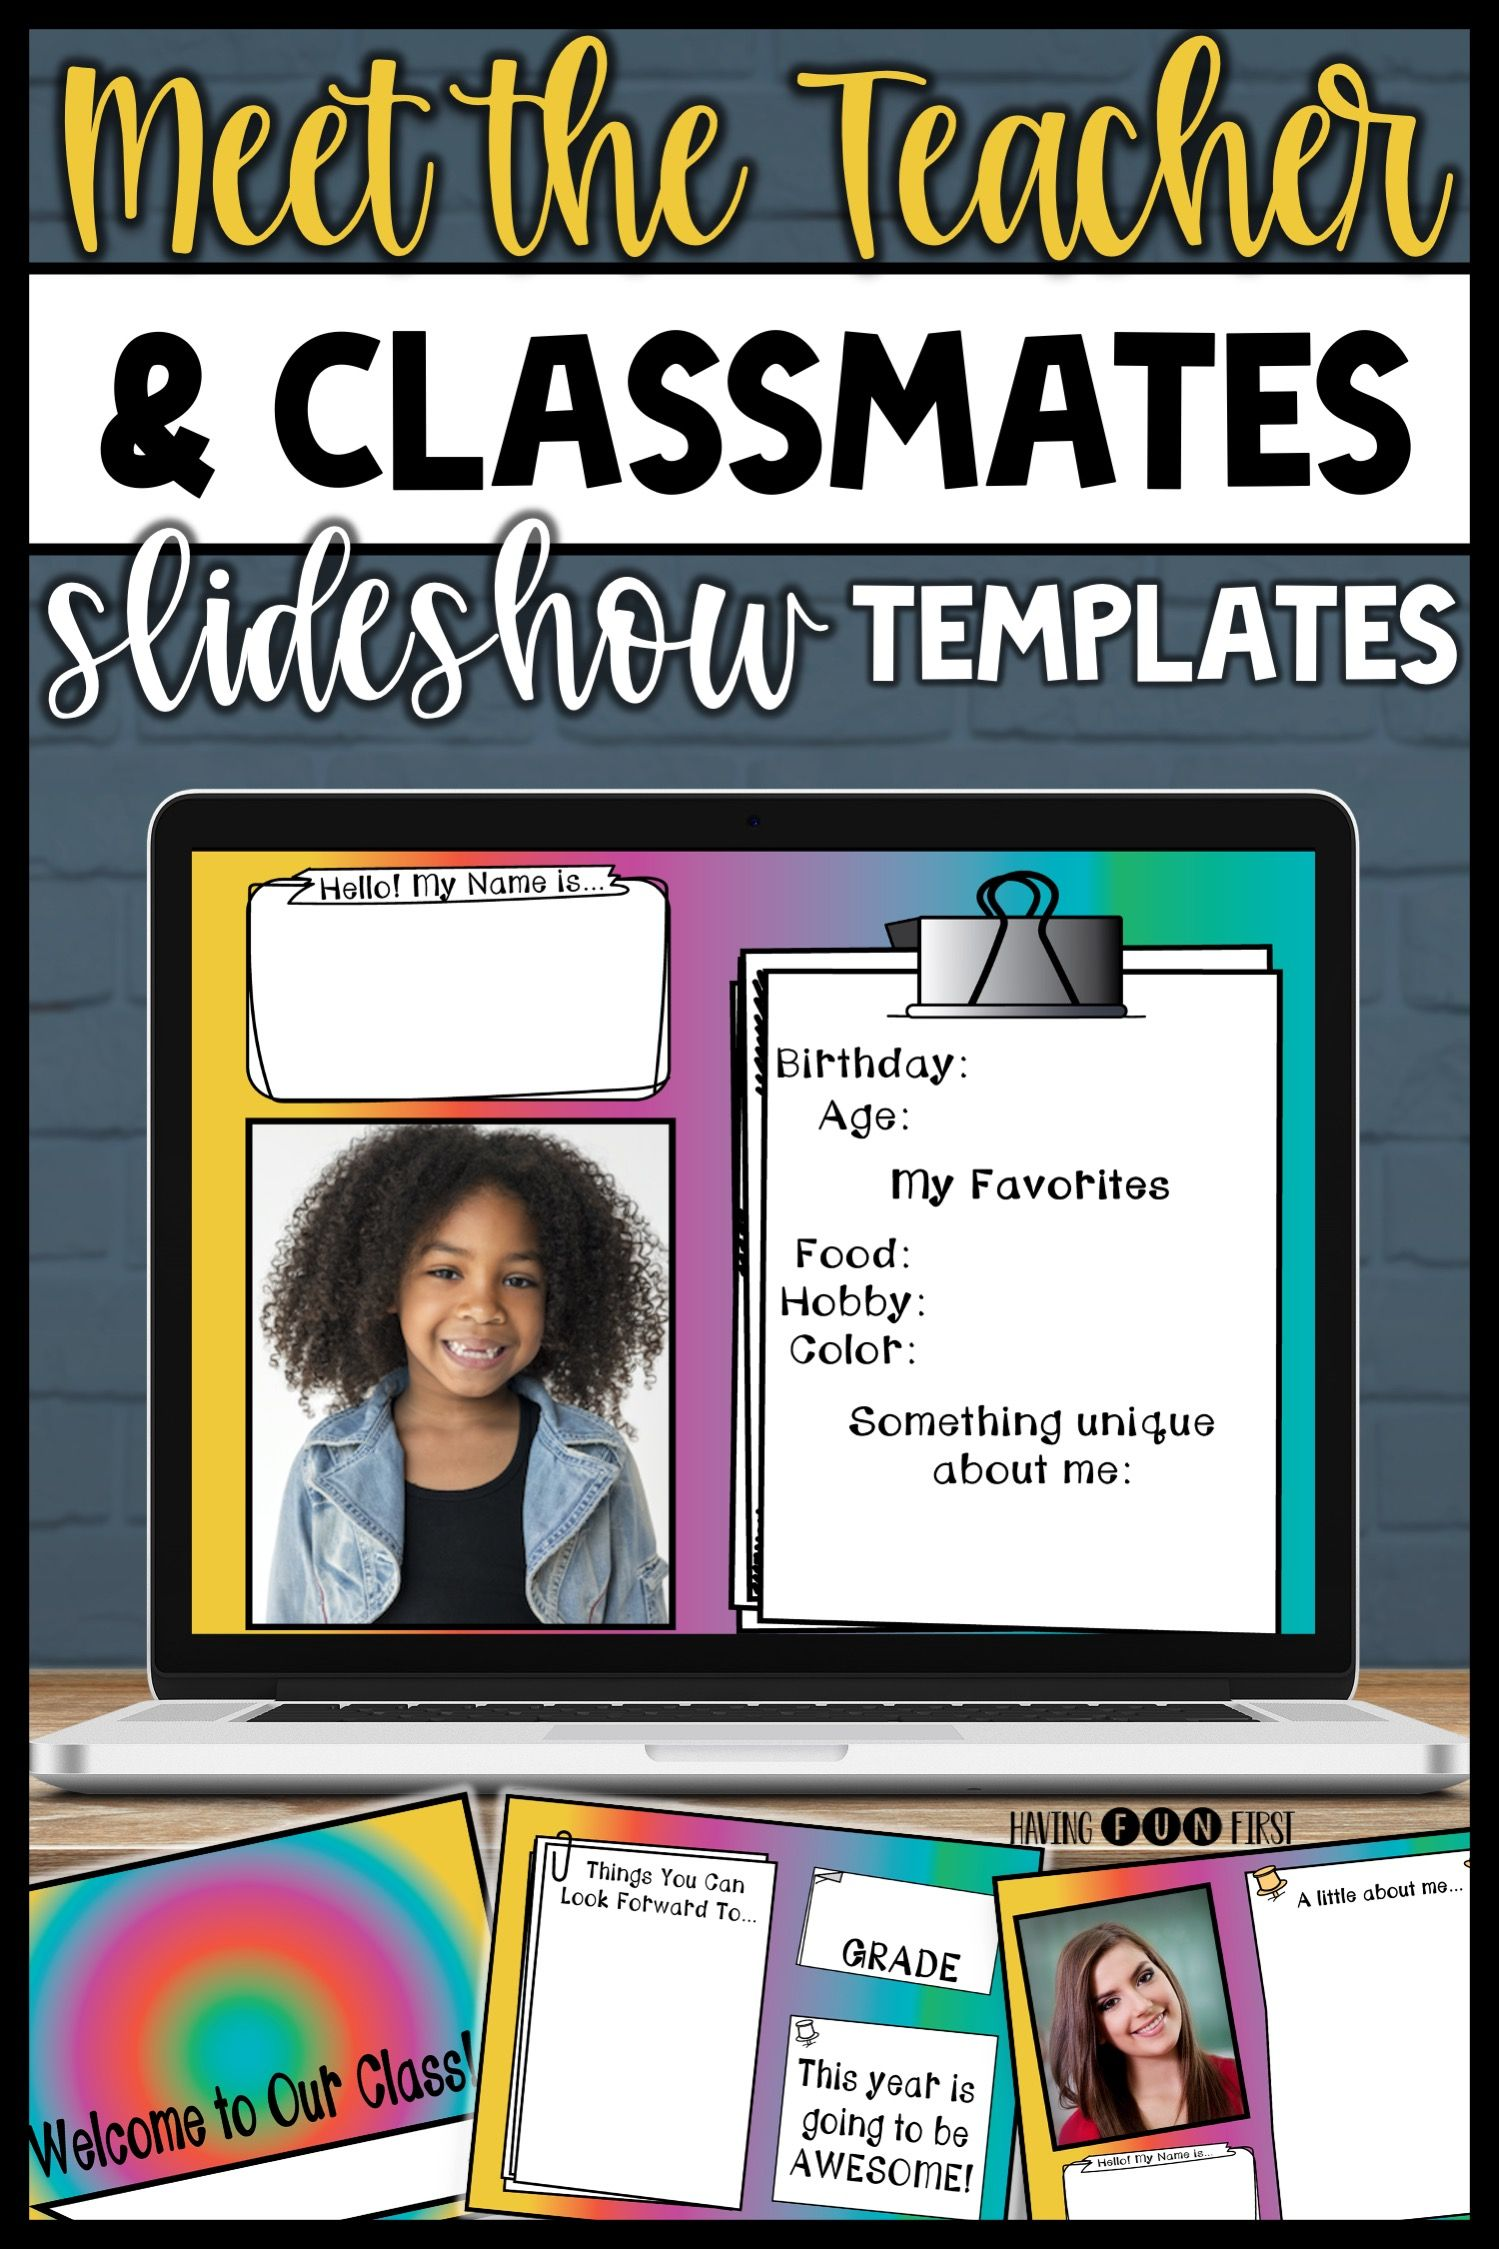 Pin On Having Fun First Tpt Resources